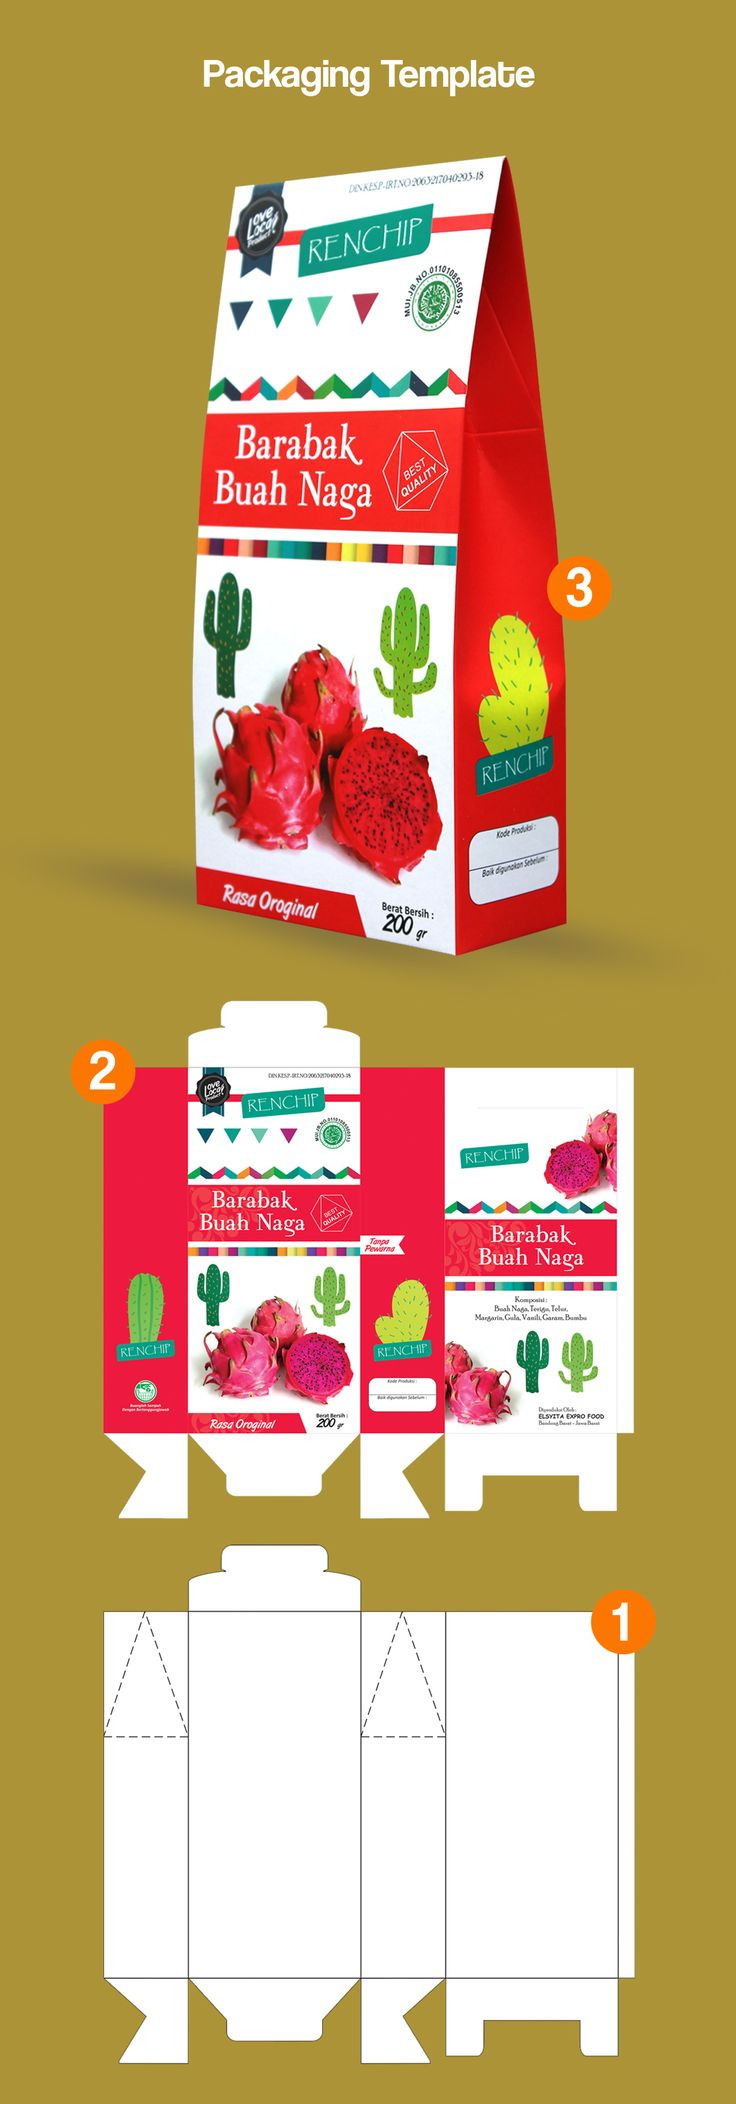 #Packaging #Template #Layout